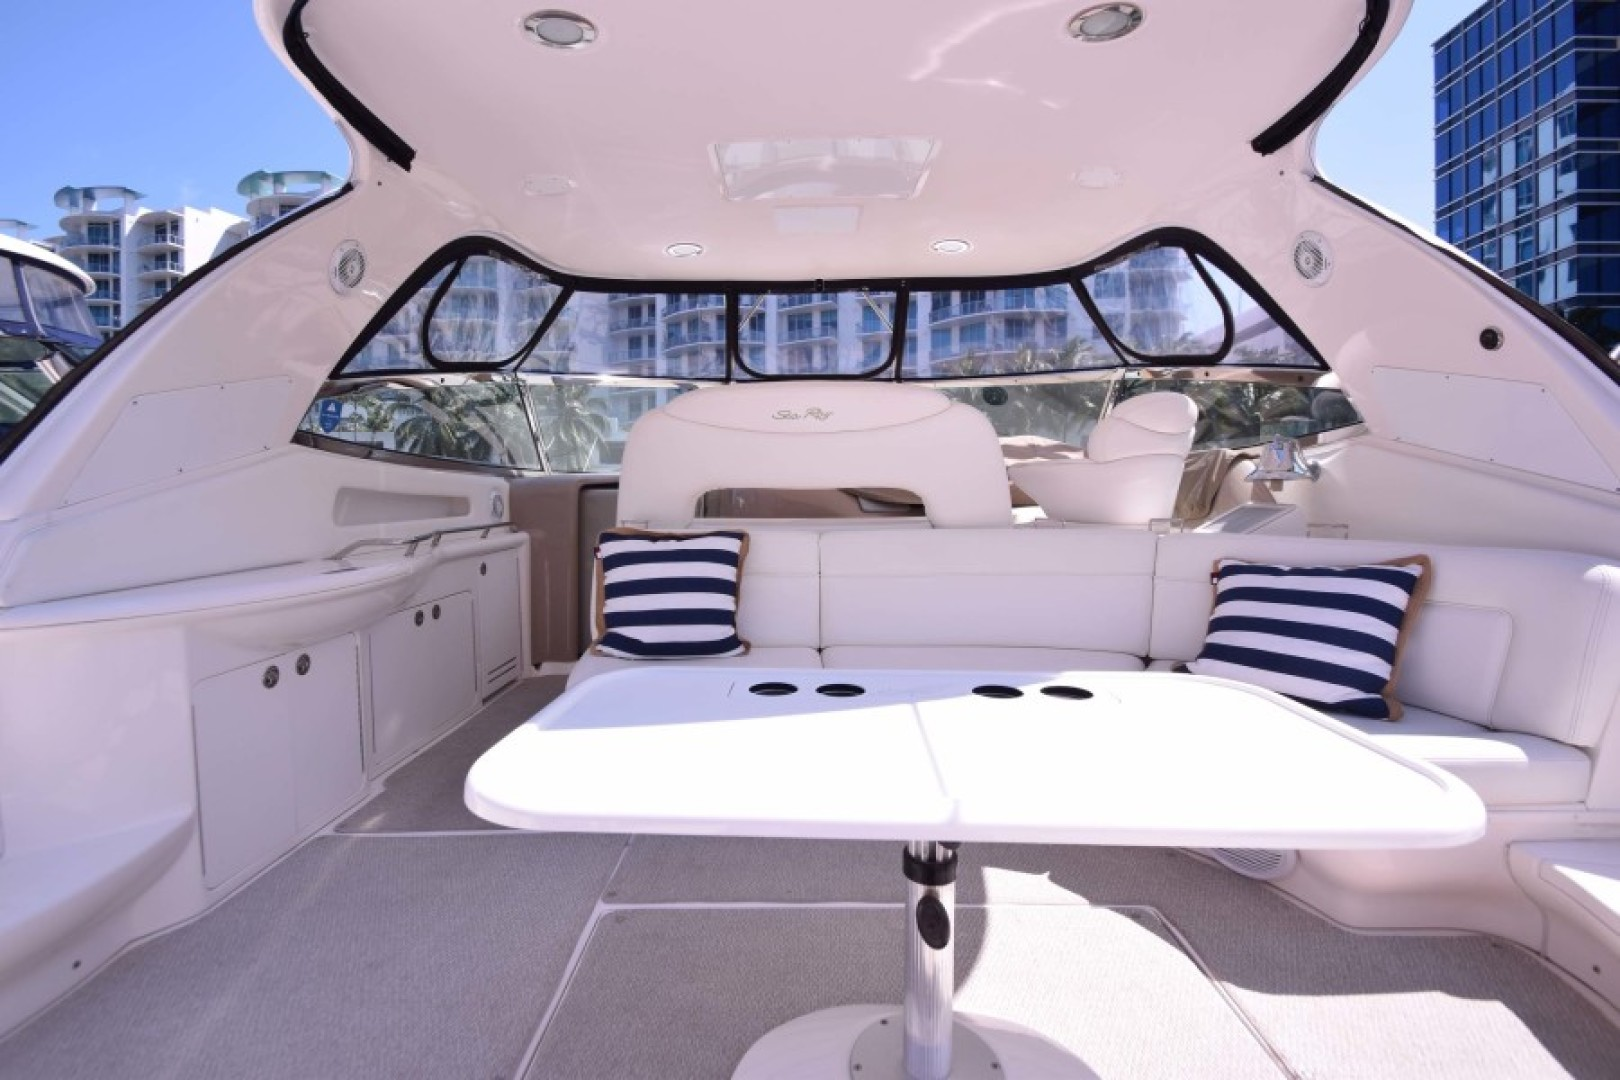 Sea Ray-460 Sundancer 2002-The Payoff Key Biscayne-Florida-United States-Cockpit to Helm View-1569339 | Thumbnail